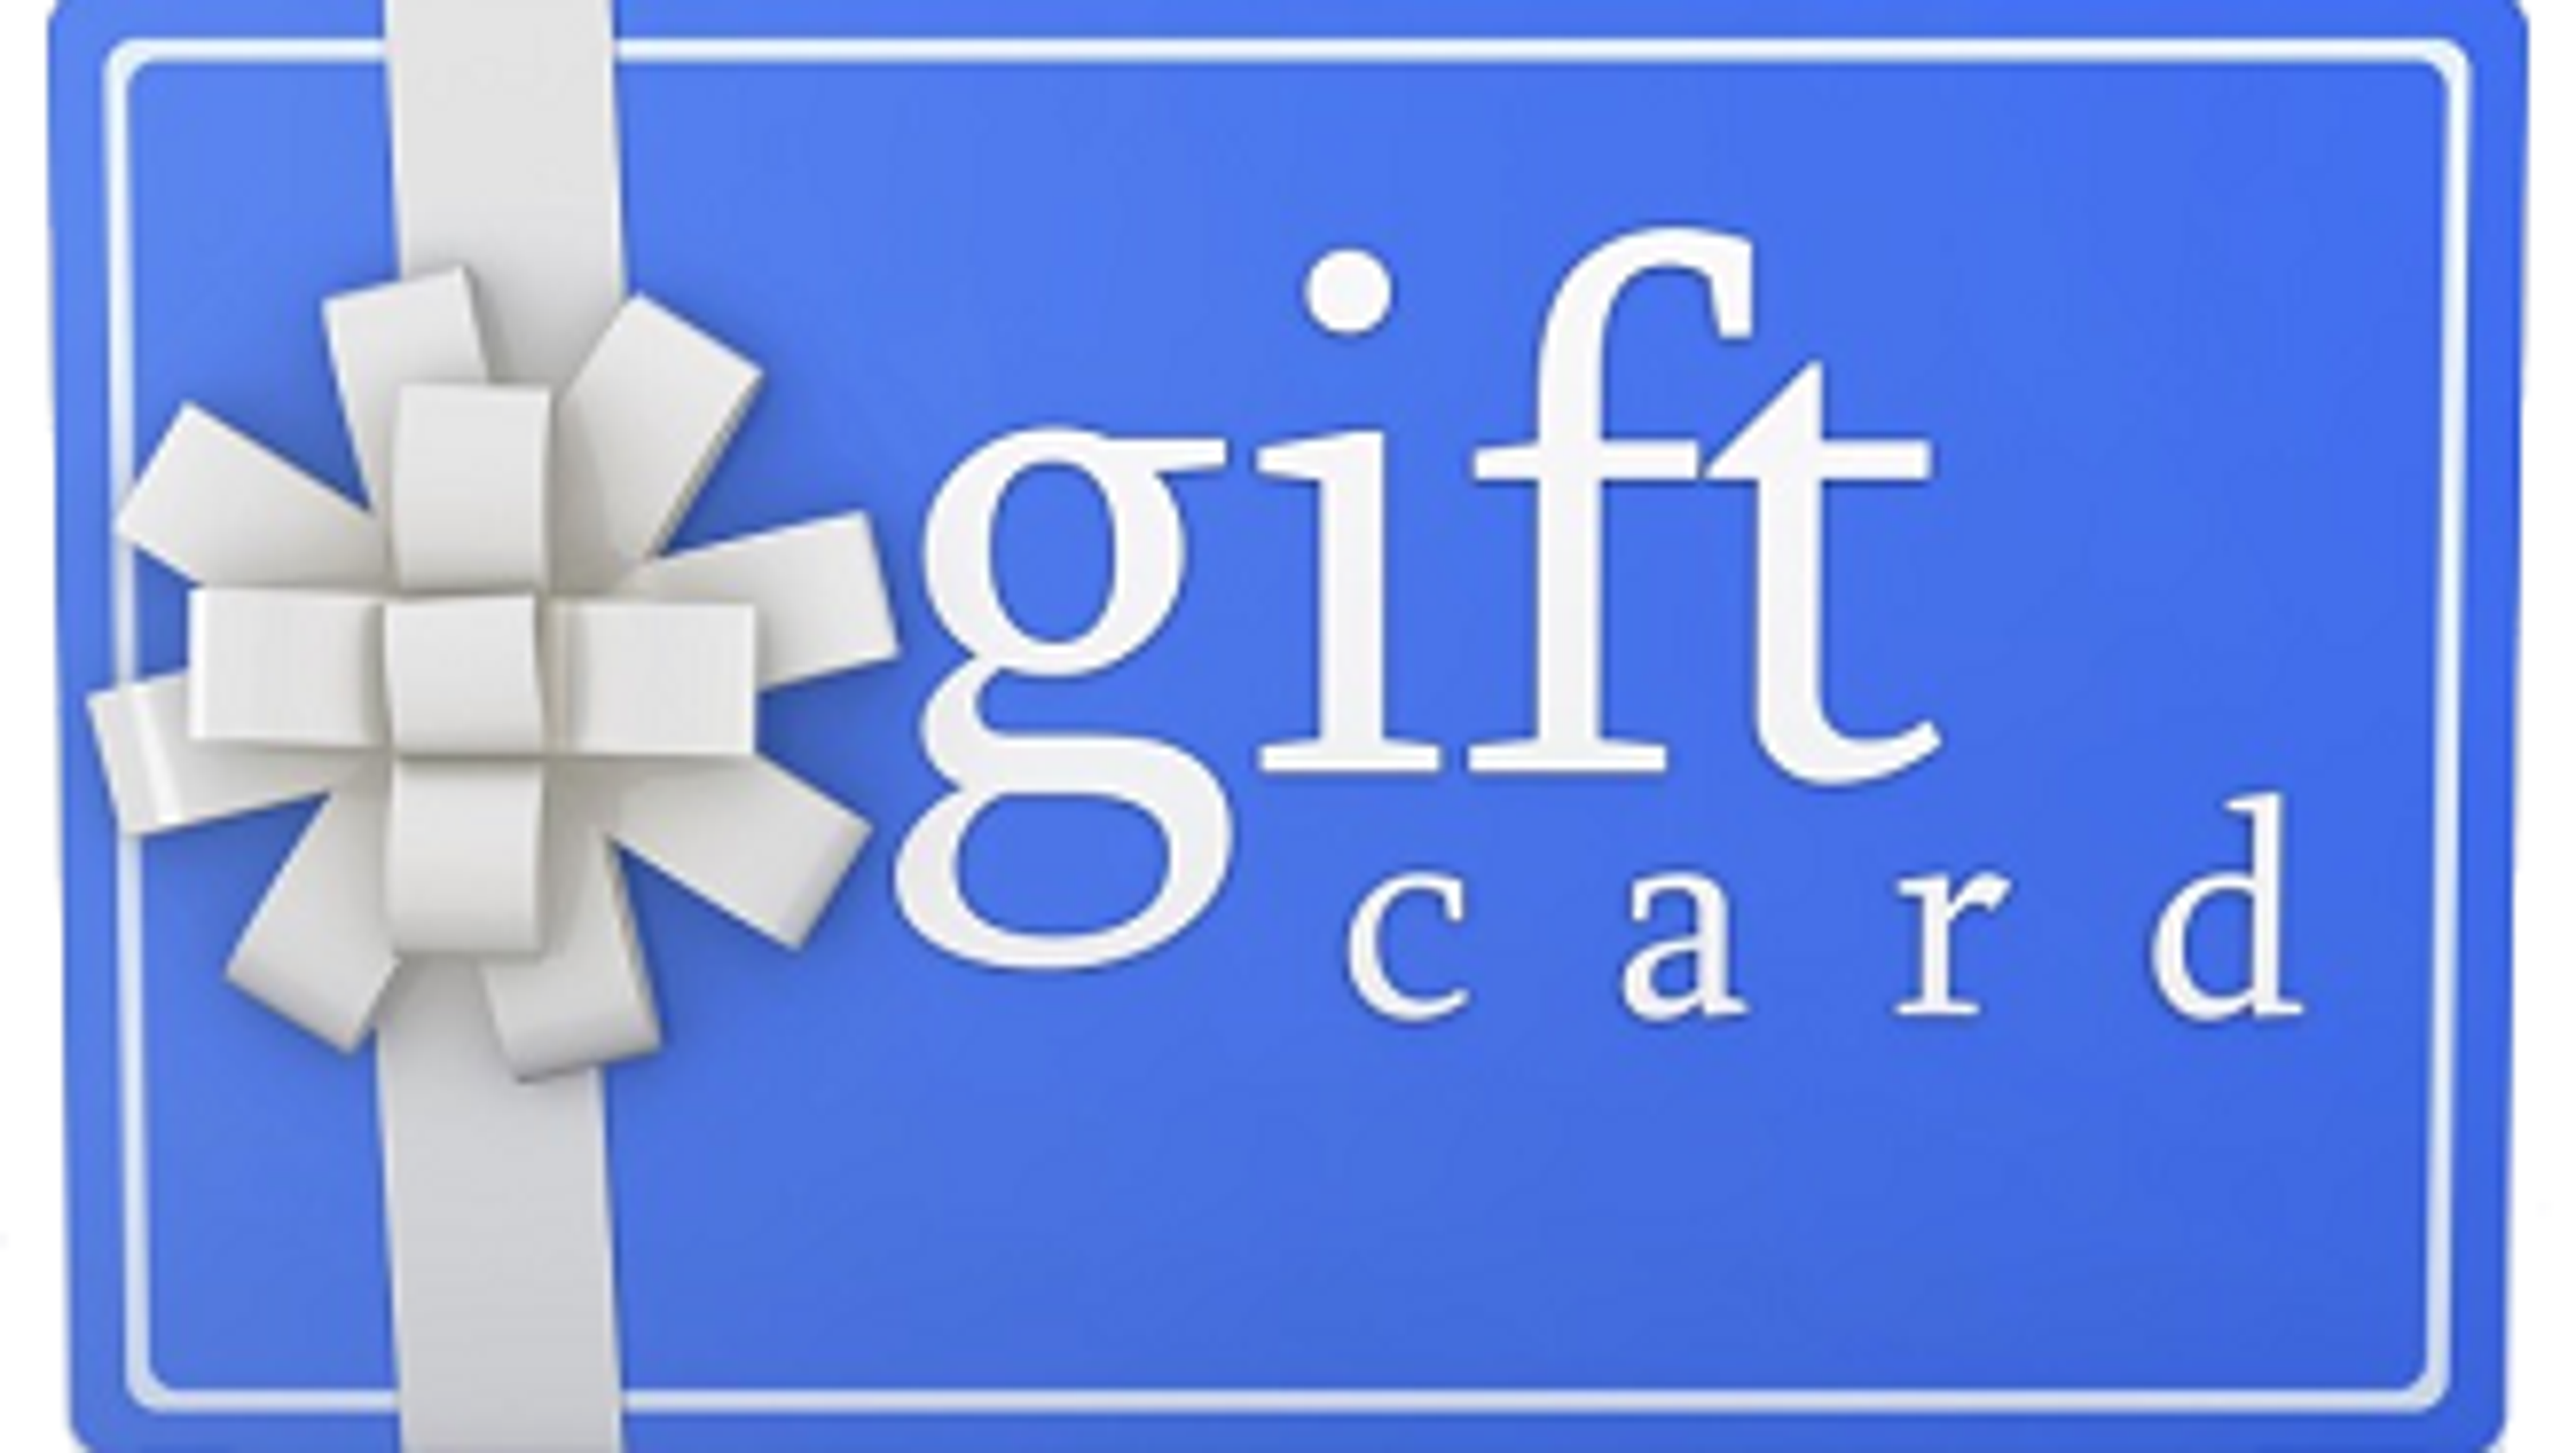 Gift Card Granny is the Leader of the Discount Gift Card Industry. Gift Card Granny helps its customers save money. With our knowledge of the gift card market, we take steps to reduce fraud and protect consumers who buy gift cards.